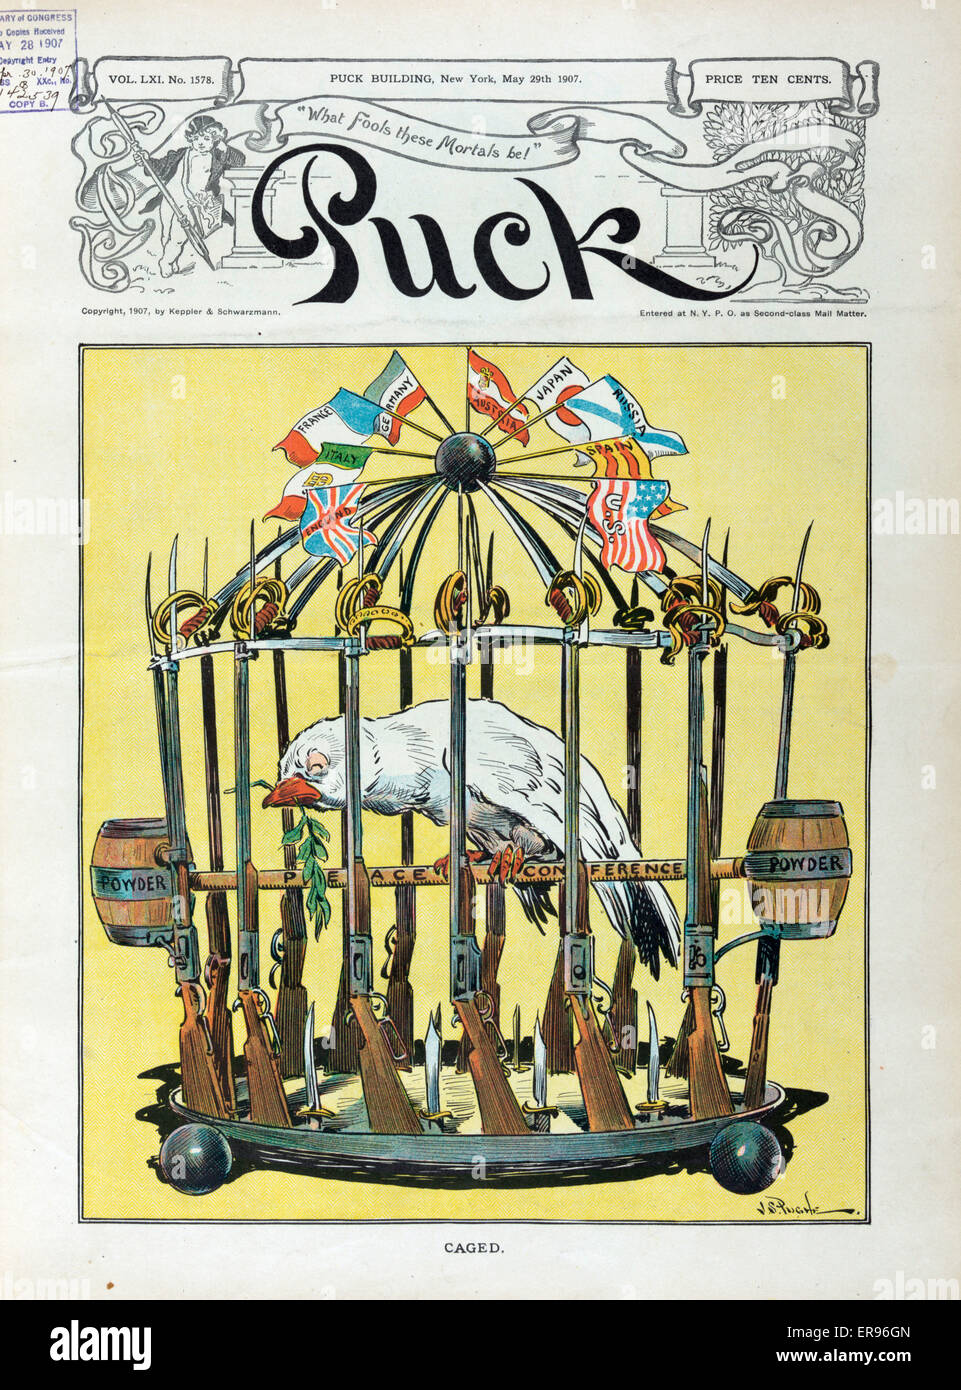 Caged. Illustration shows a sickly looking dove in a birdcage fashioned from rifles and swords, with Powder kegs - Stock Image